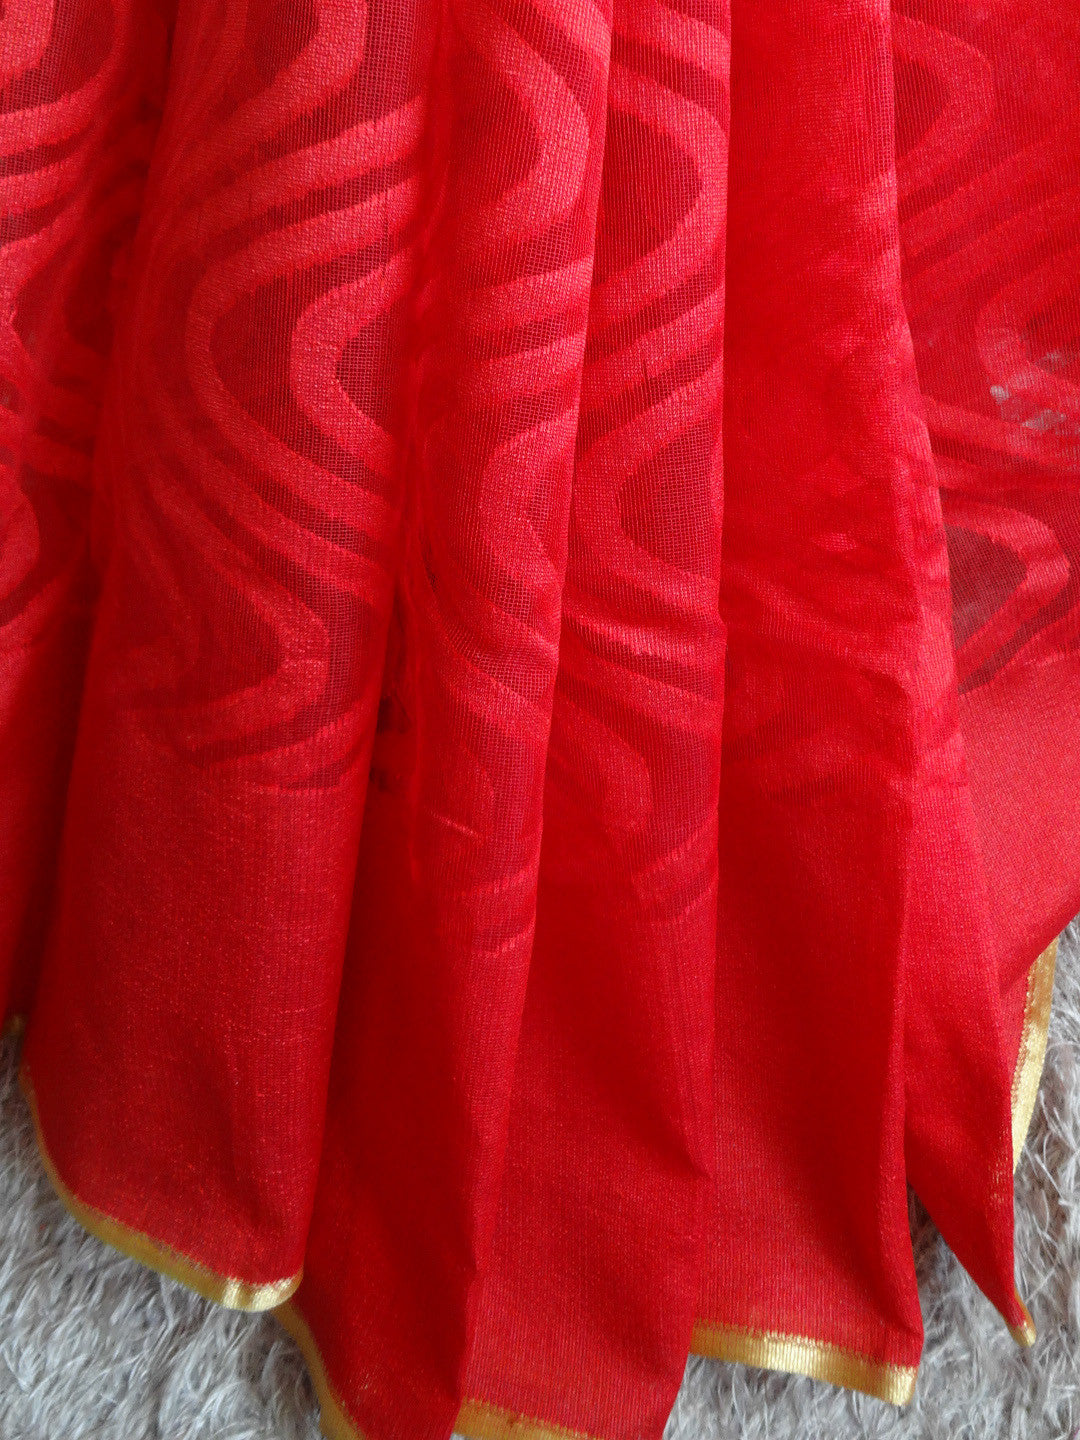 Banarasee Handwoven Net Saree With Self Woven Wave Design-Red